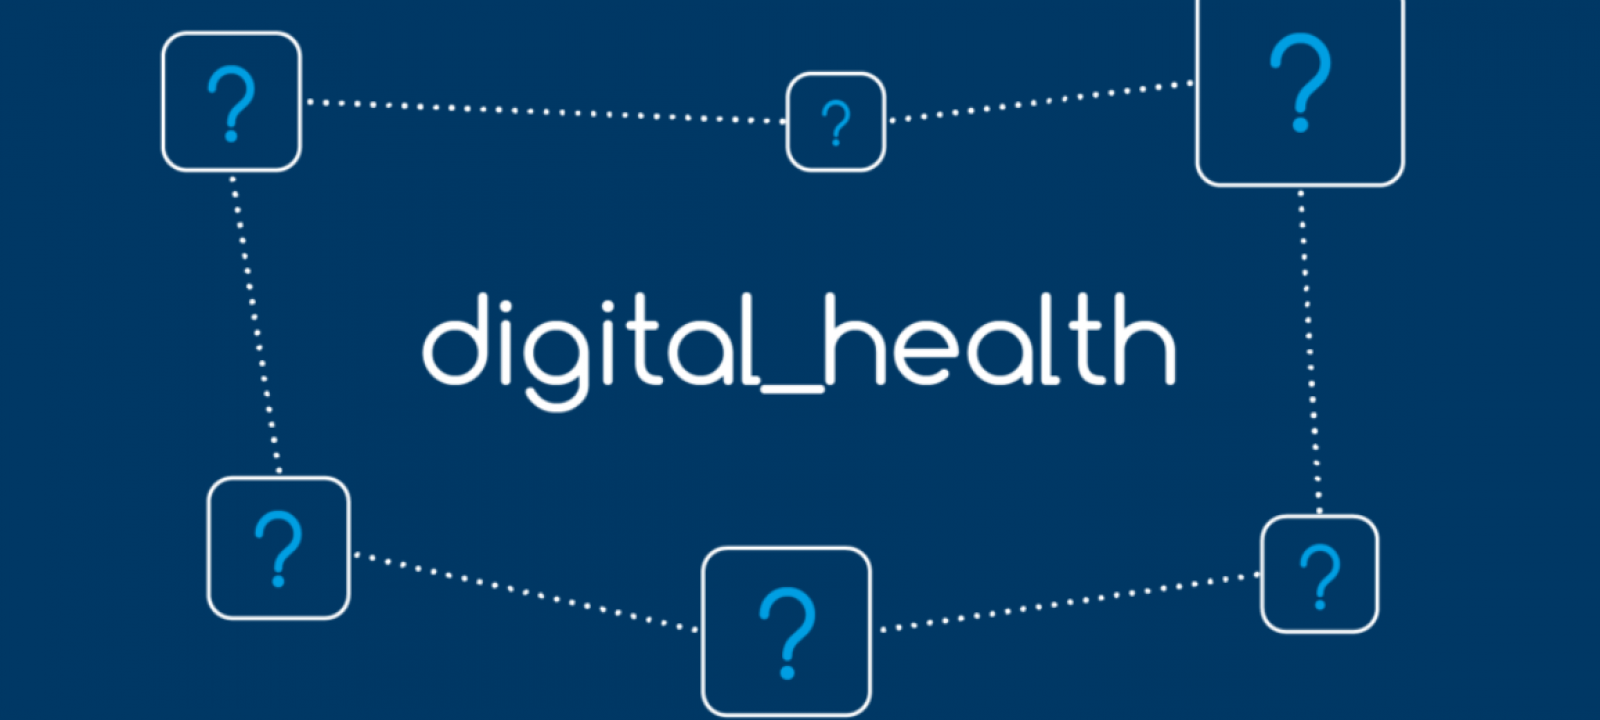 The definition and scope of digital health